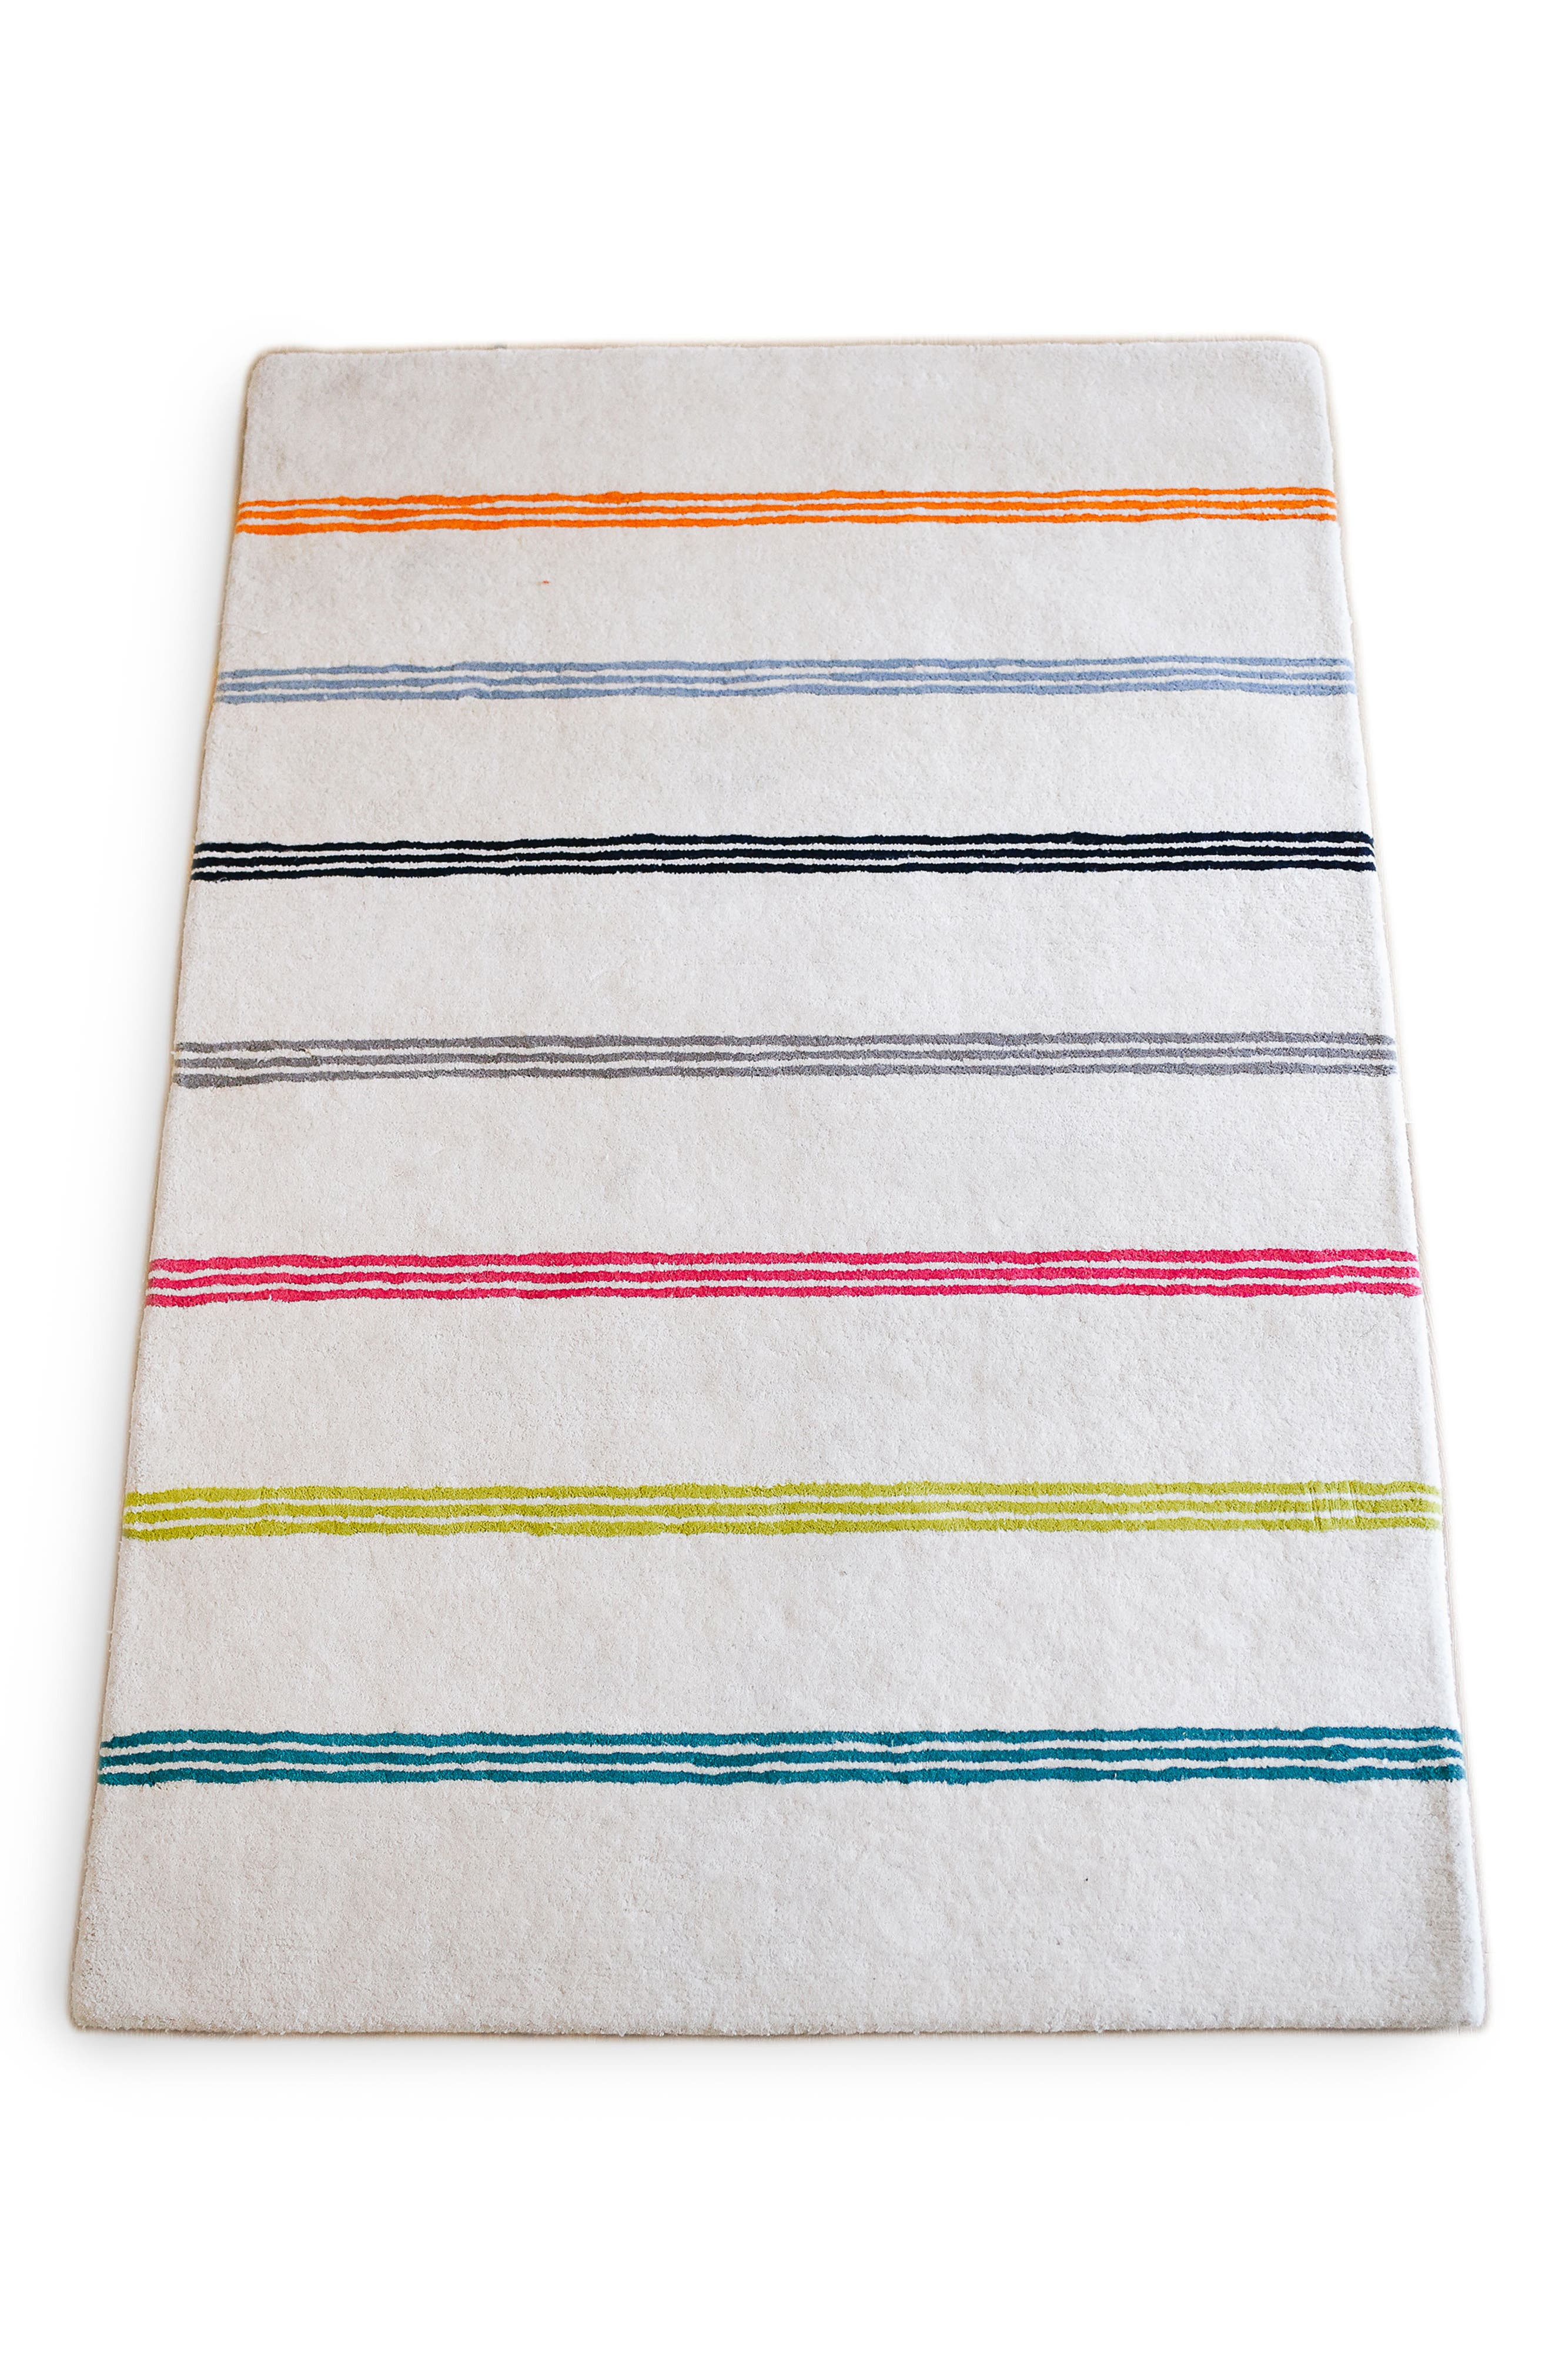 Rainbow Stripe Wool Rug,                             Main thumbnail 1, color,                             Multi